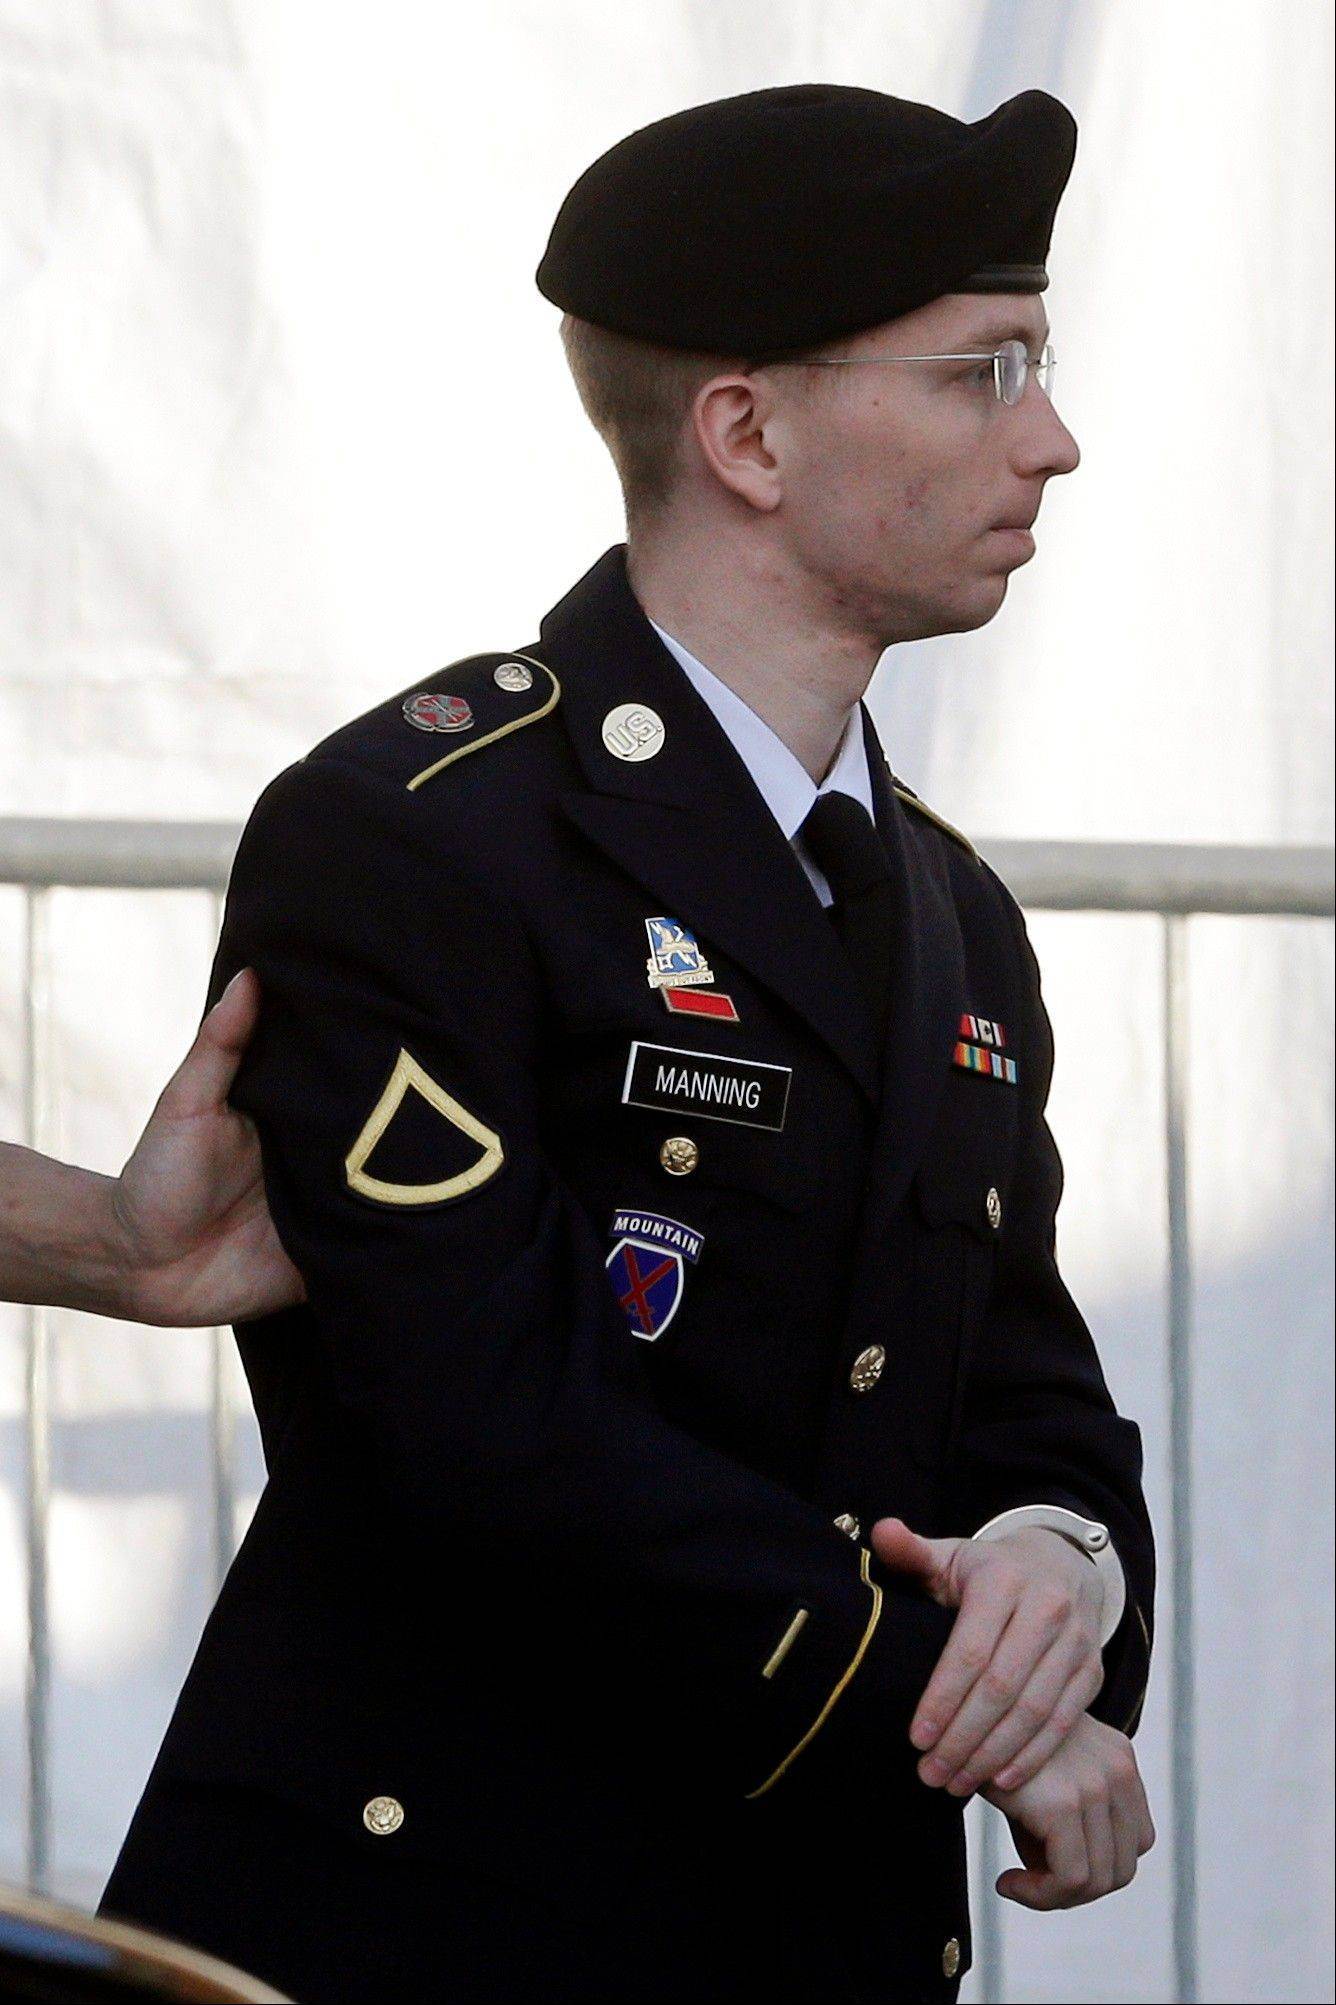 Army Pfc. Bradley Manning is escorted into a courthouse in Fort Meade, Md., Wednesday, April 10, 2013, before a pretrial military hearing. Manning, who is charged with causing hundreds of thousands of classified documents to be published on the secret-sharing website WikiLeaks, is scheduled to face a court martial in June.